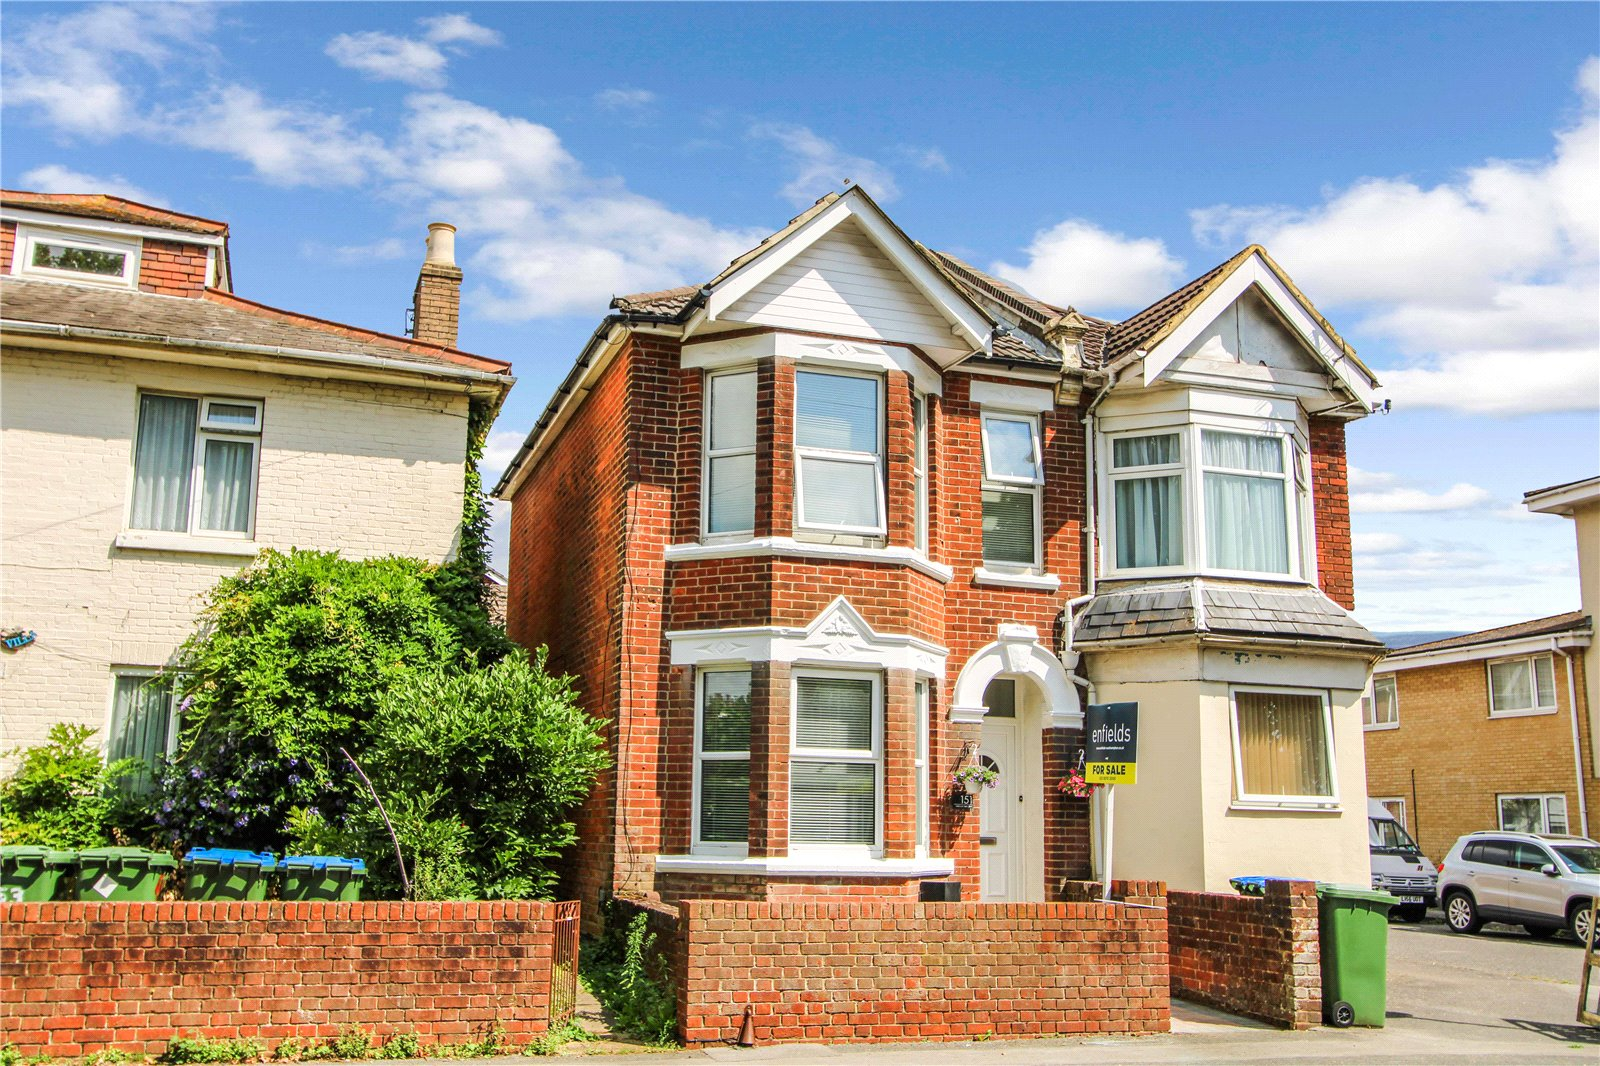 3 bed terrace house in southampton hampshire